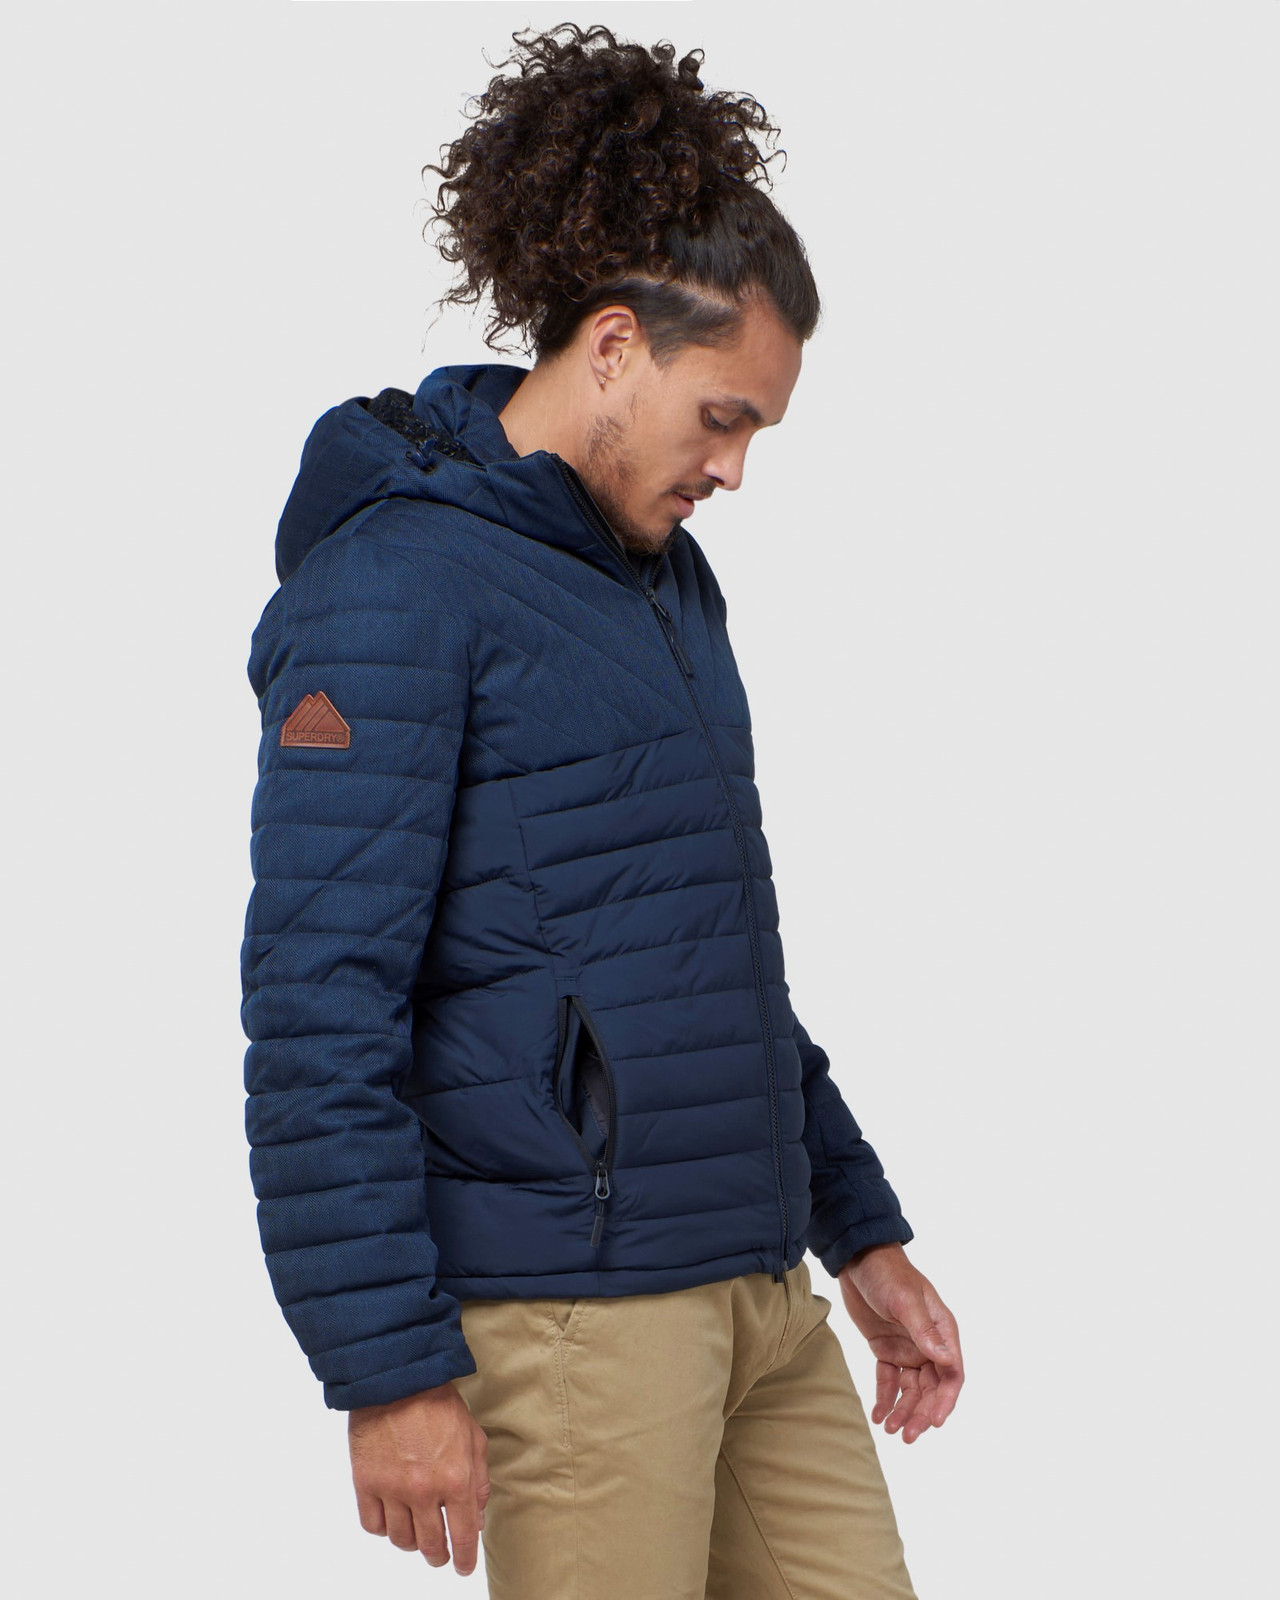 Superdry Mens TWEED MIX FUJI Navy Puffer Jackets 2